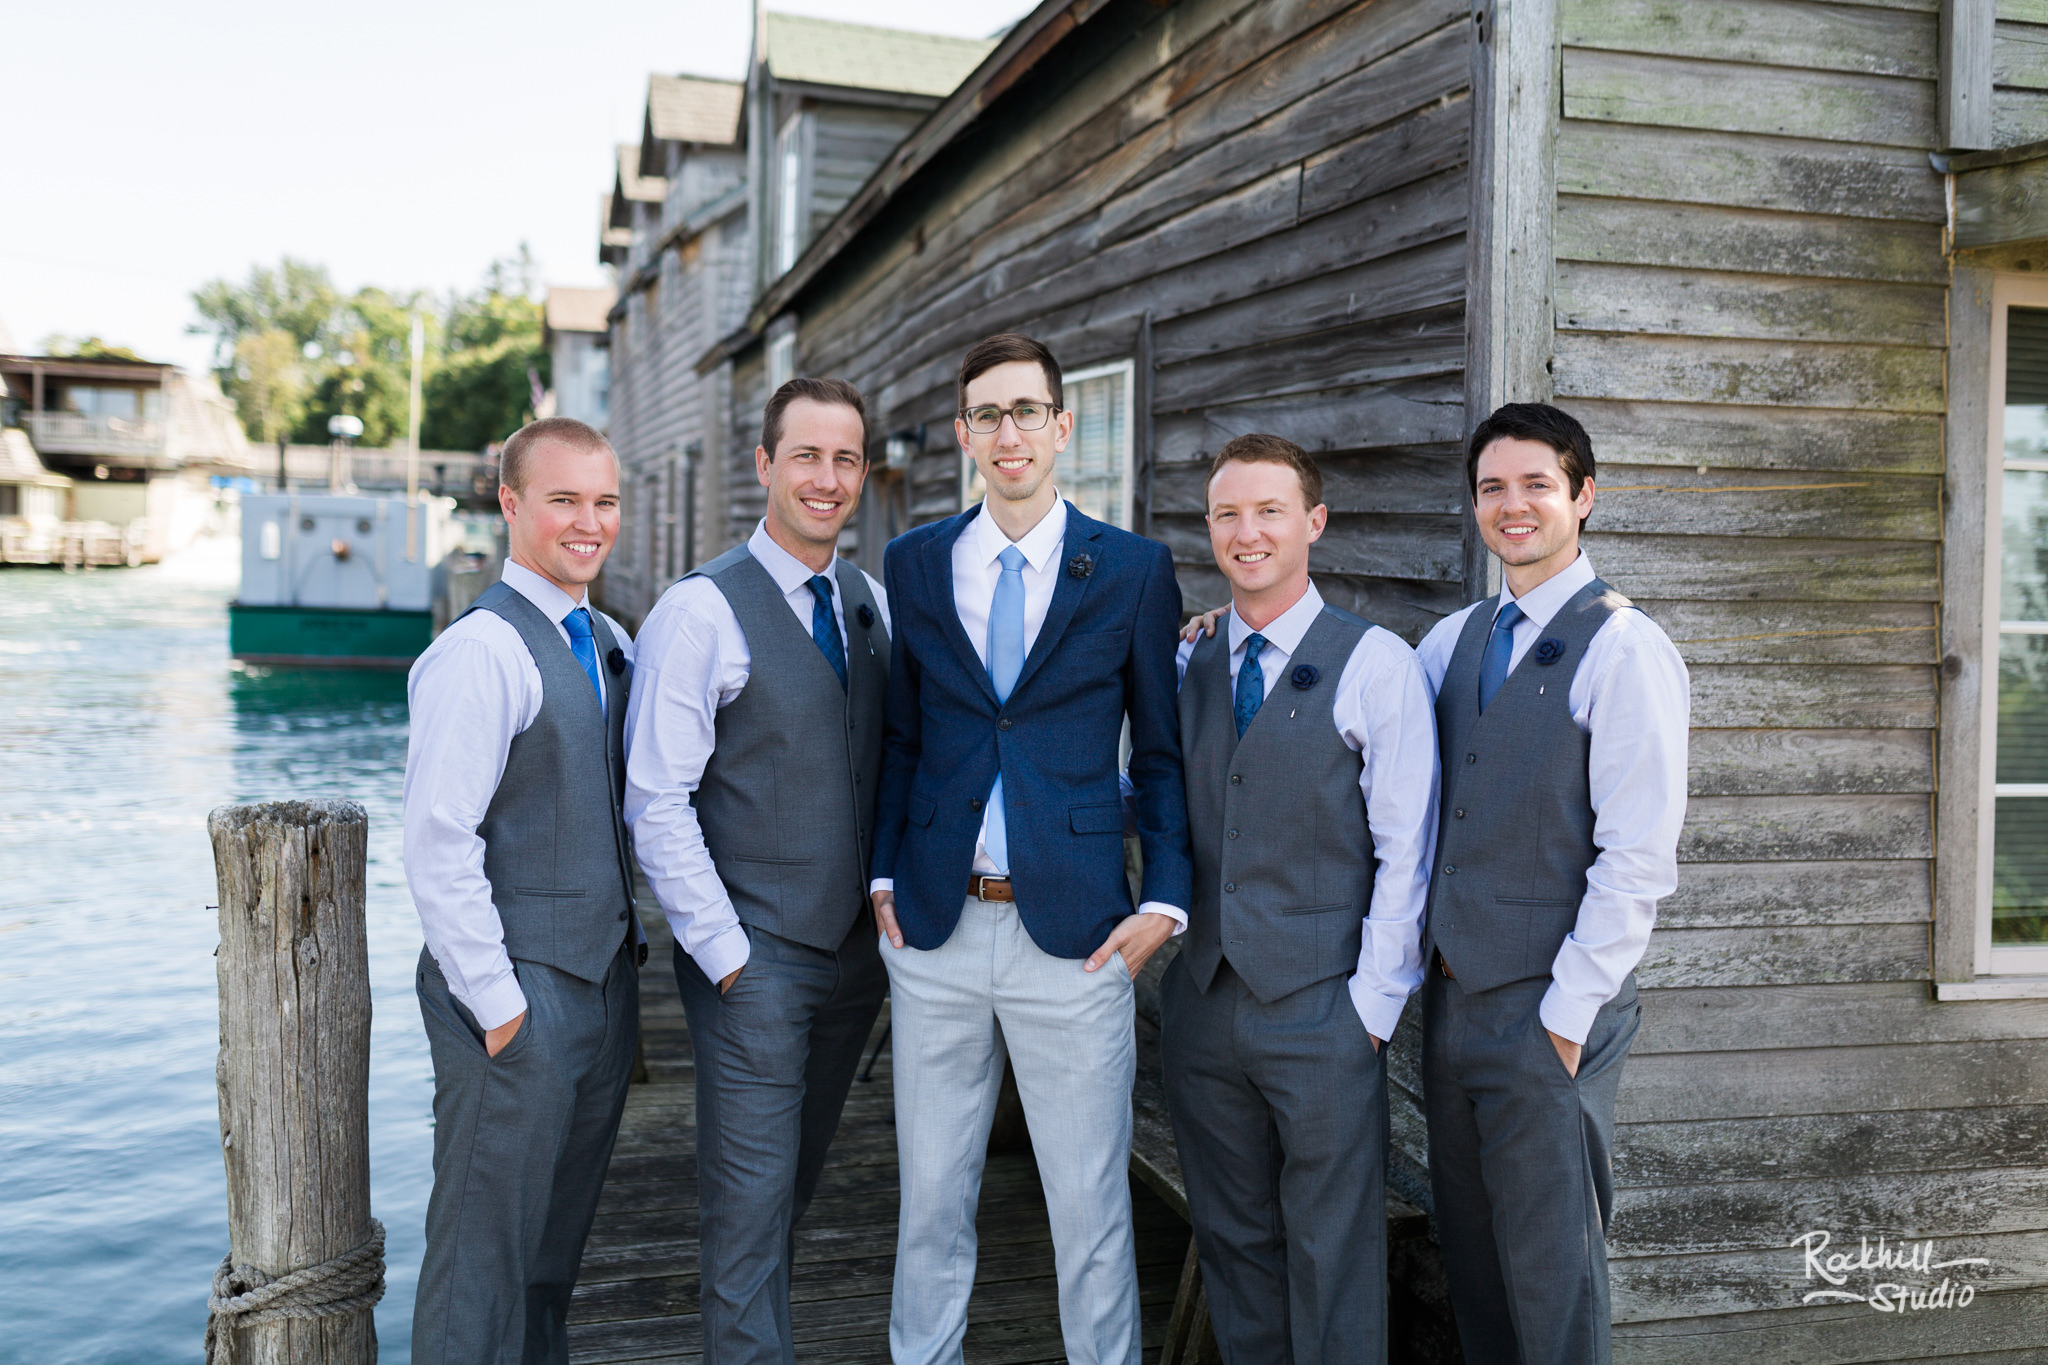 Traverse City wedding photographer Rockhill Studio, Glen Arbor Wedding, leland fishtown